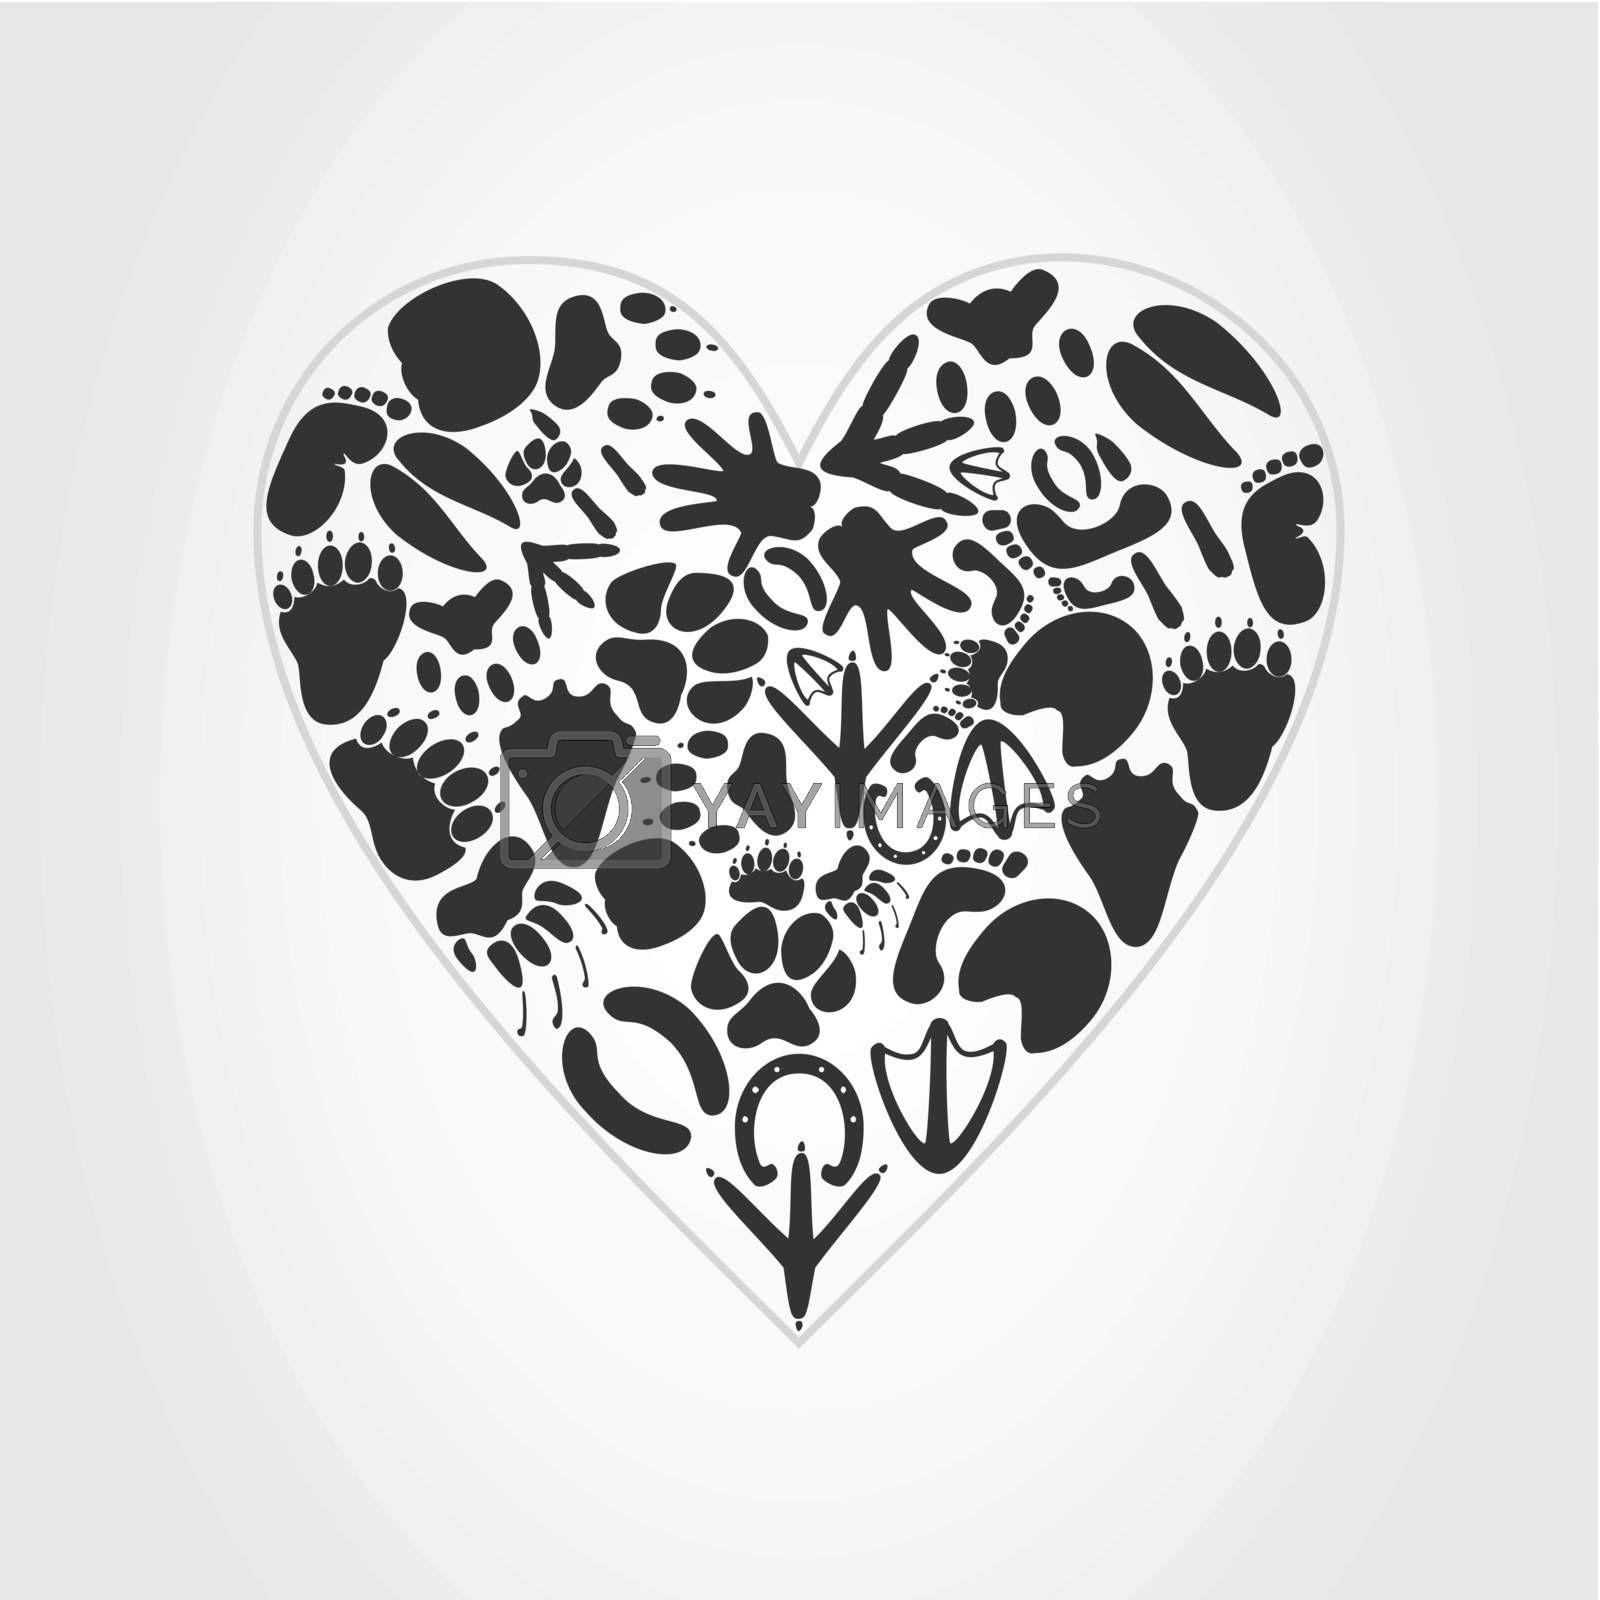 Heart collected from traces of animals. A vector illustration